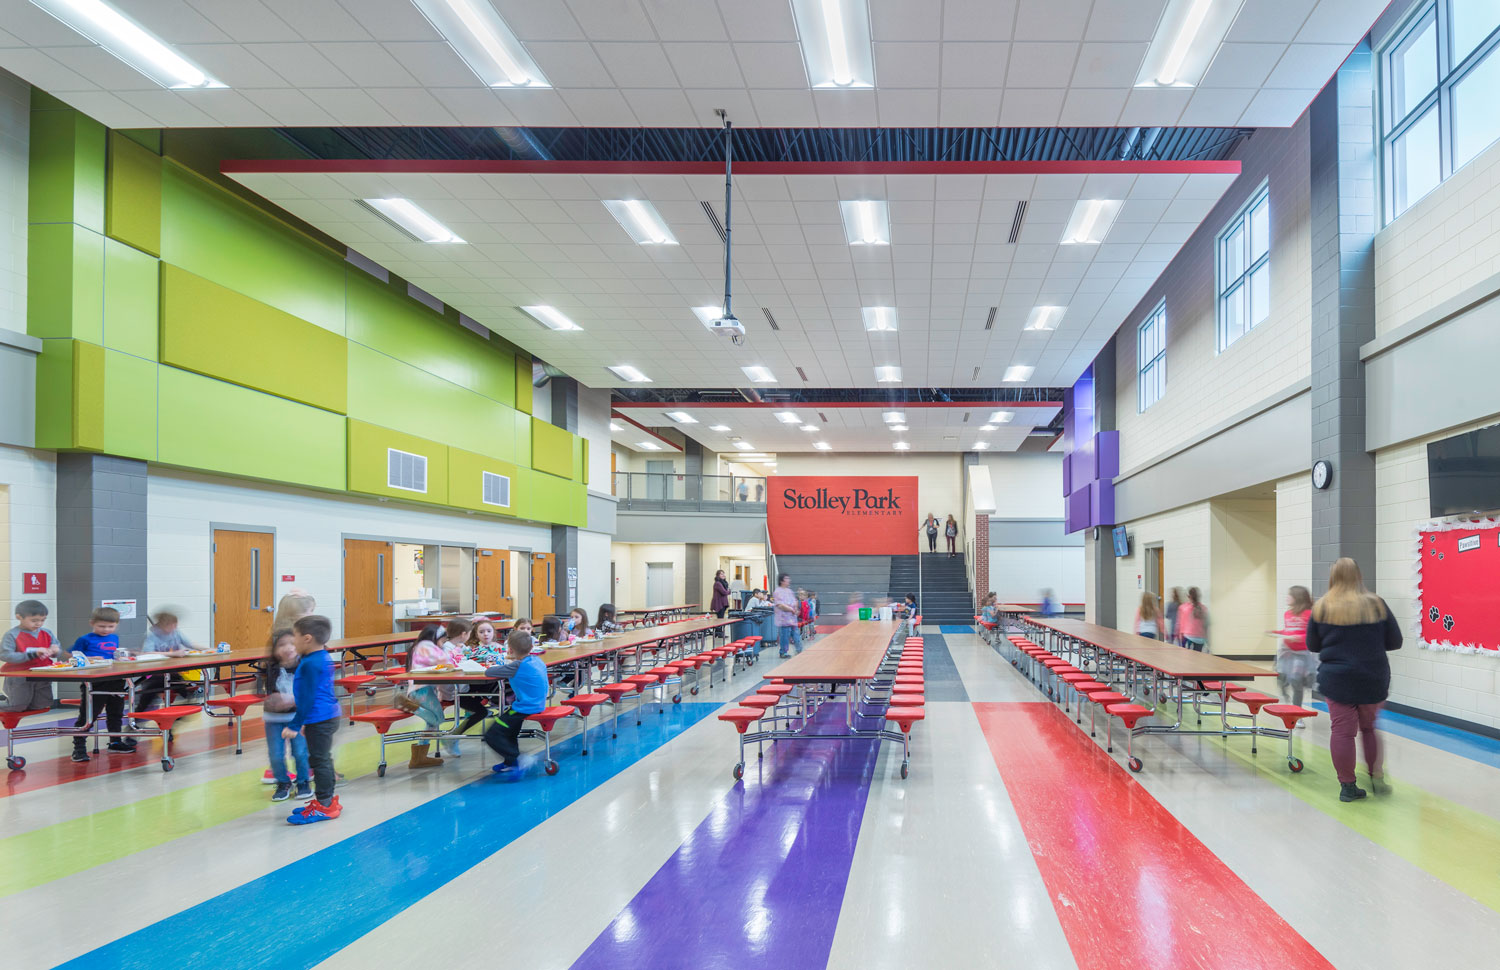 001_StolleyParkElem_Commons_0475